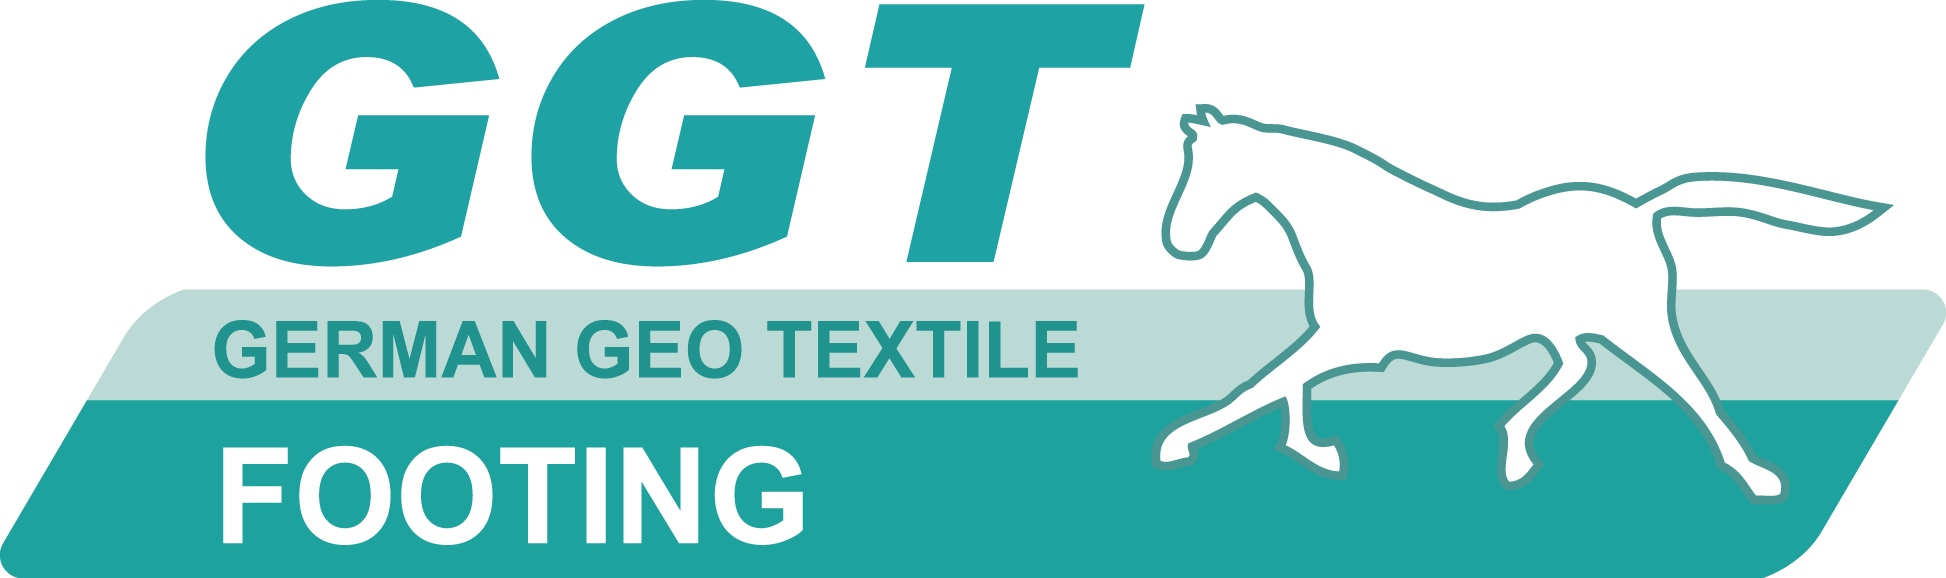 GGT - German Geo Textile Footing